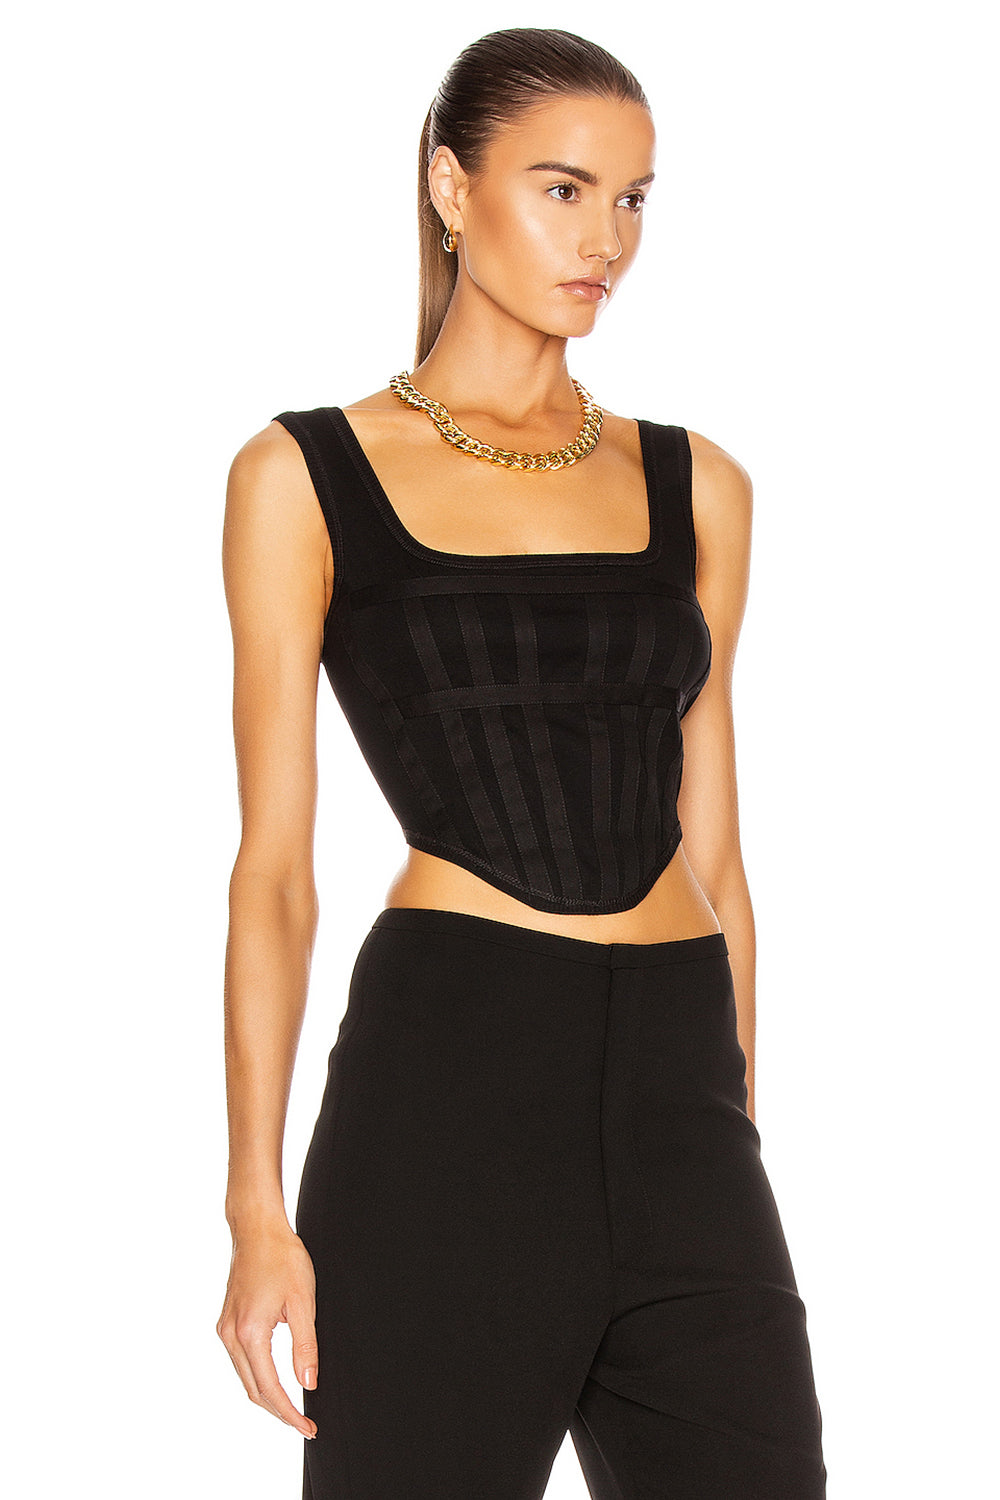 Black Slim Irregular Hem Bandage Short Top - CHICIDA